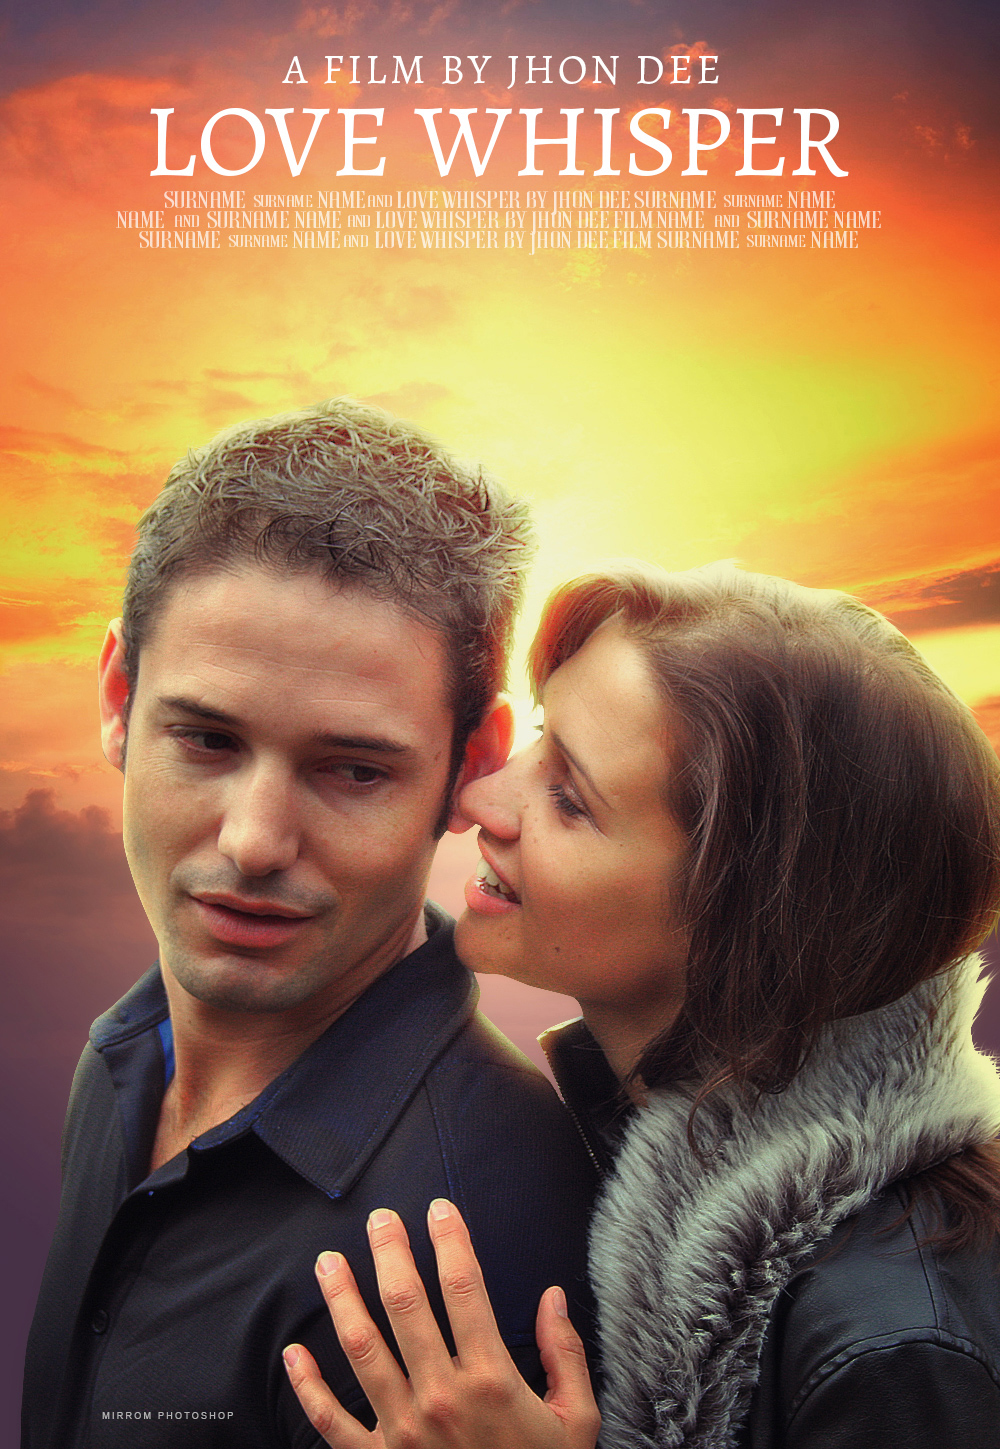 Create a Simple Romantic Movie Poster in Photoshop CC